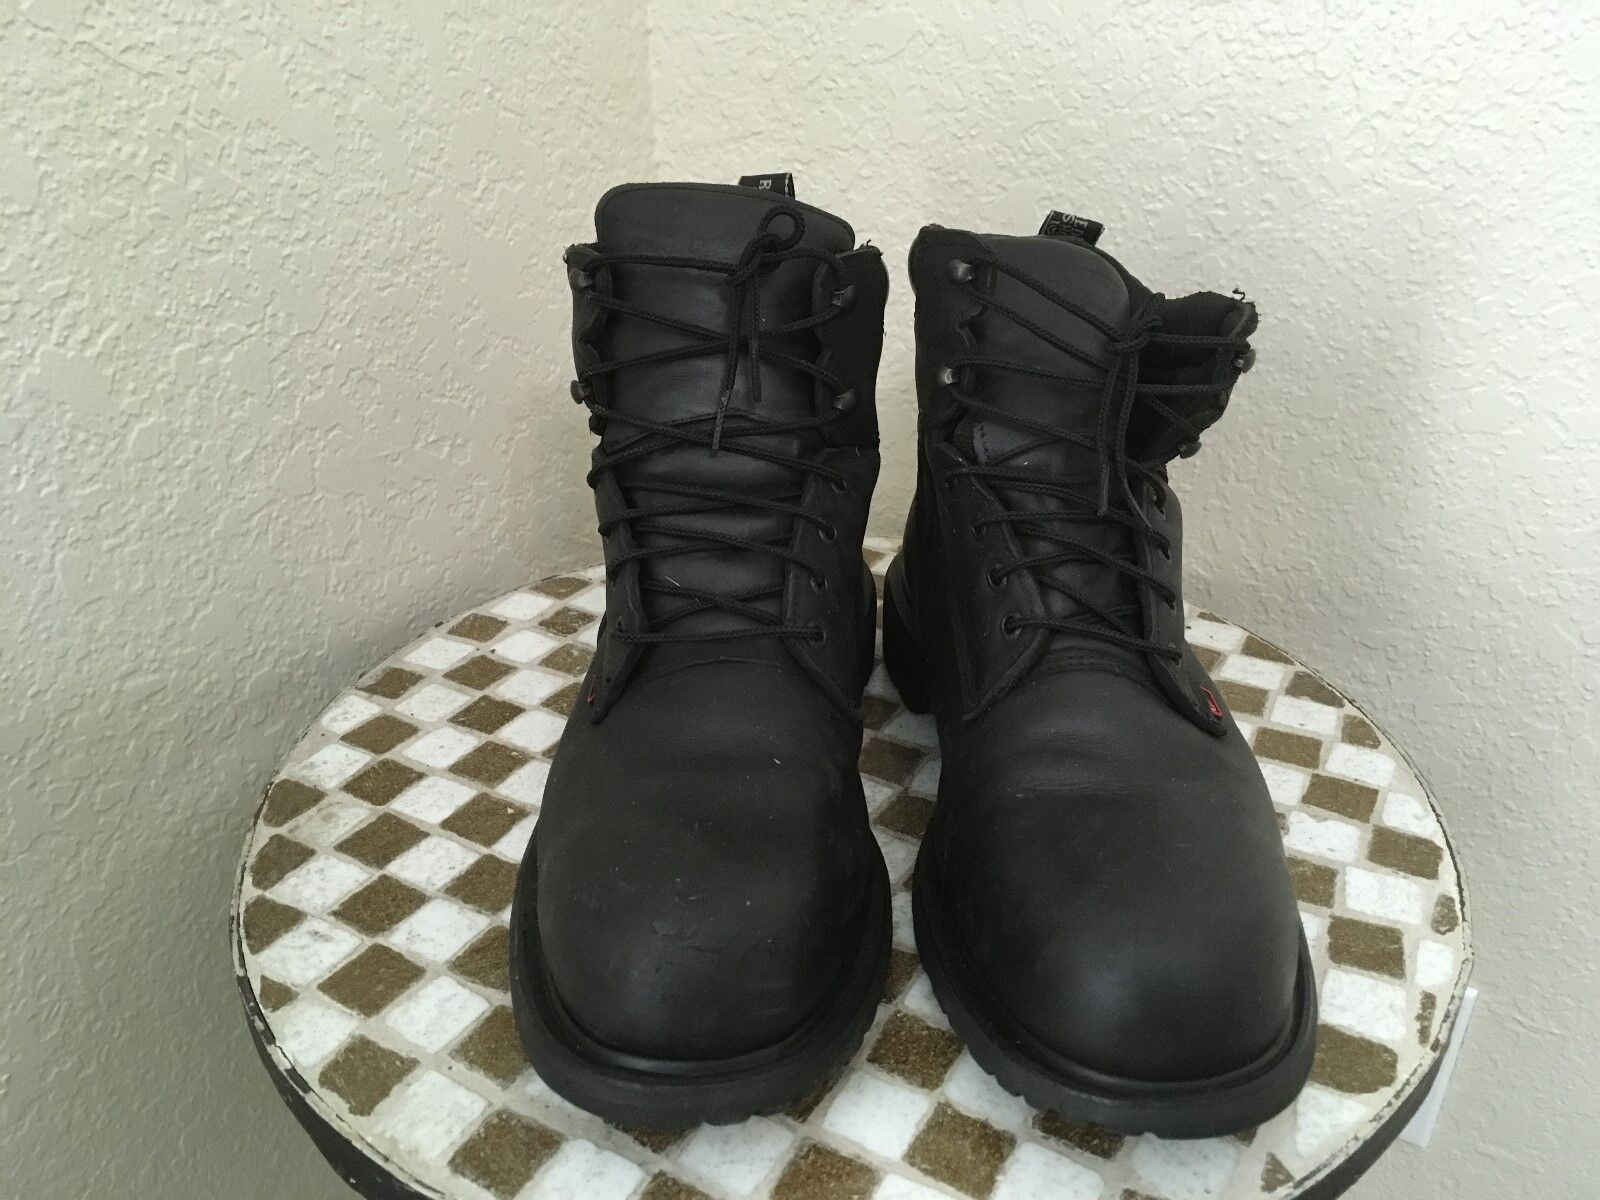 STEEL TOE MADE IN USA LACK  LEATHER LEATHER LEATHER 4217 rot WING WORK CHORE TRUCKER Stiefel 12 D 55c32a